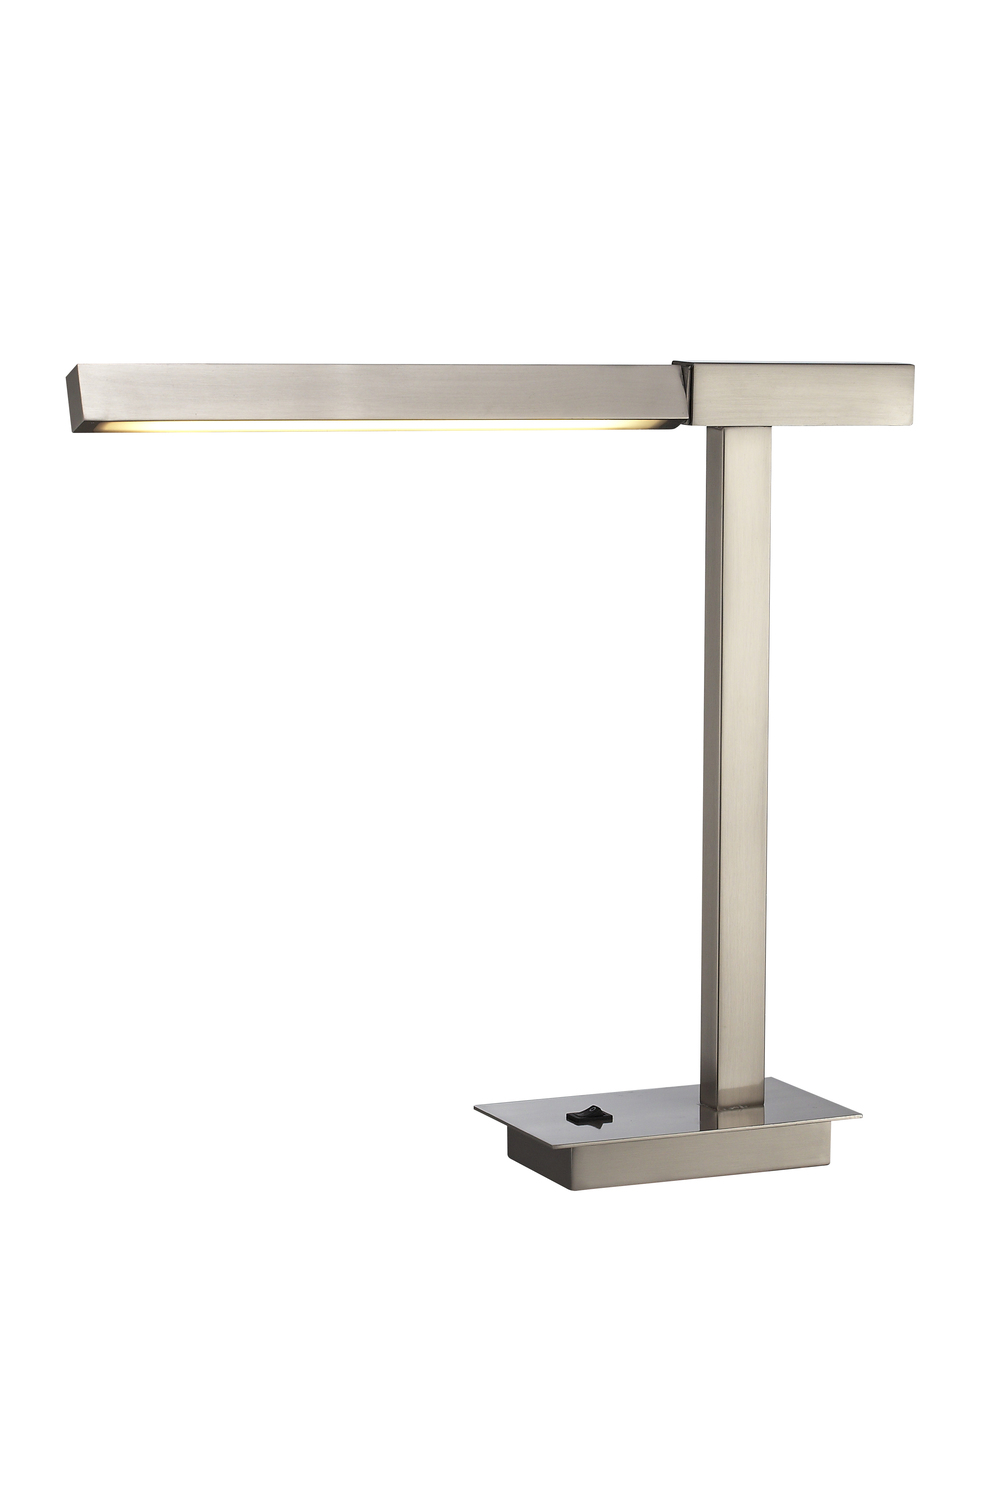 10016 | ROTATOR LED DESK LAMP